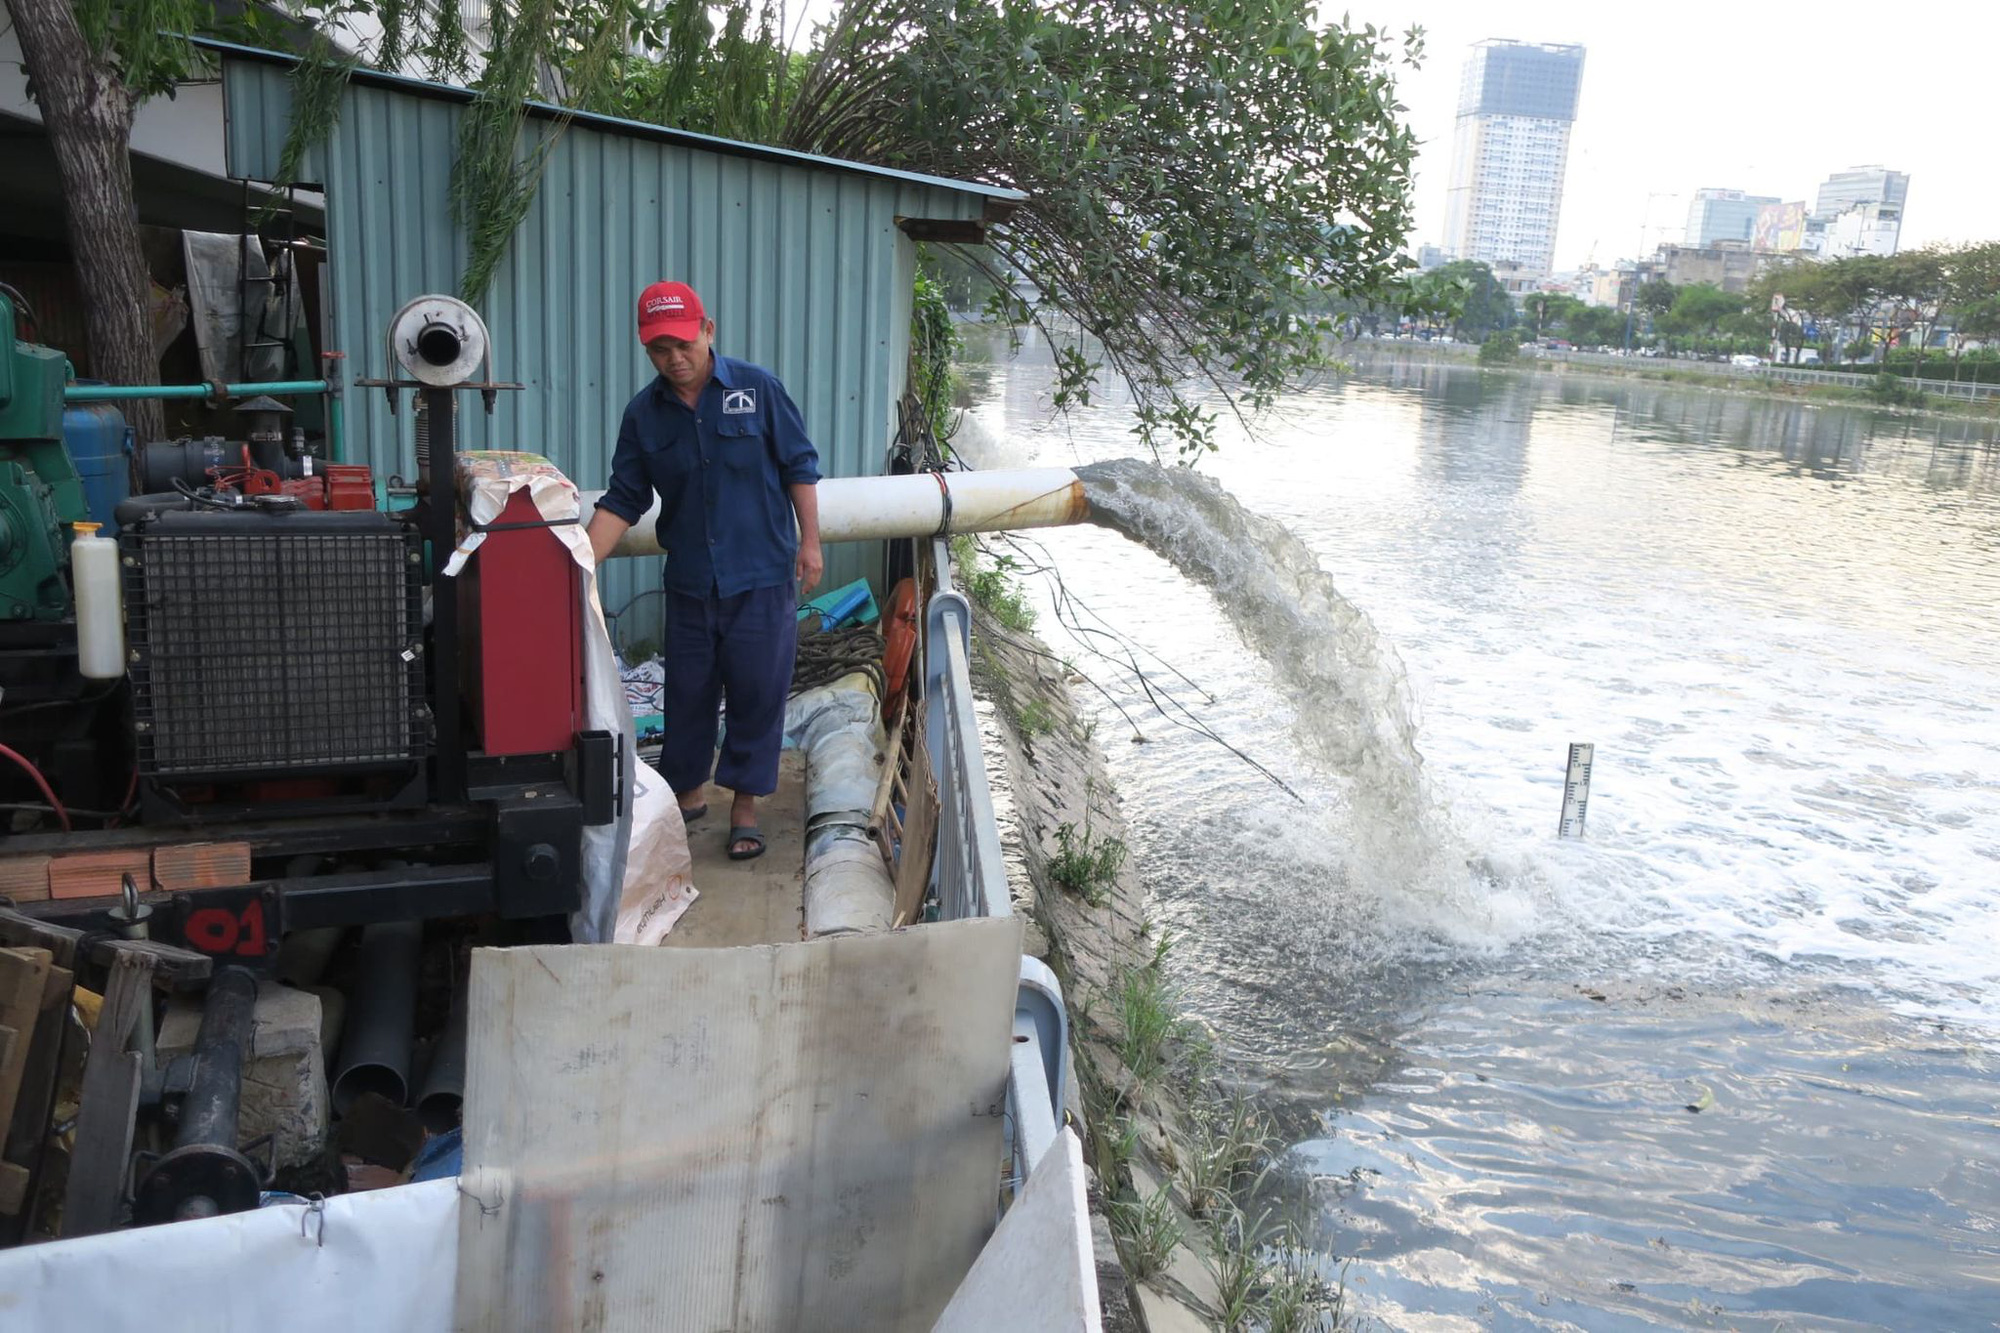 A worker operates a water pump to alleviate flooding in District 4, Ho Chi Minh City, November 16, 2020. Photo: T.T.D. / Tuoi Tre